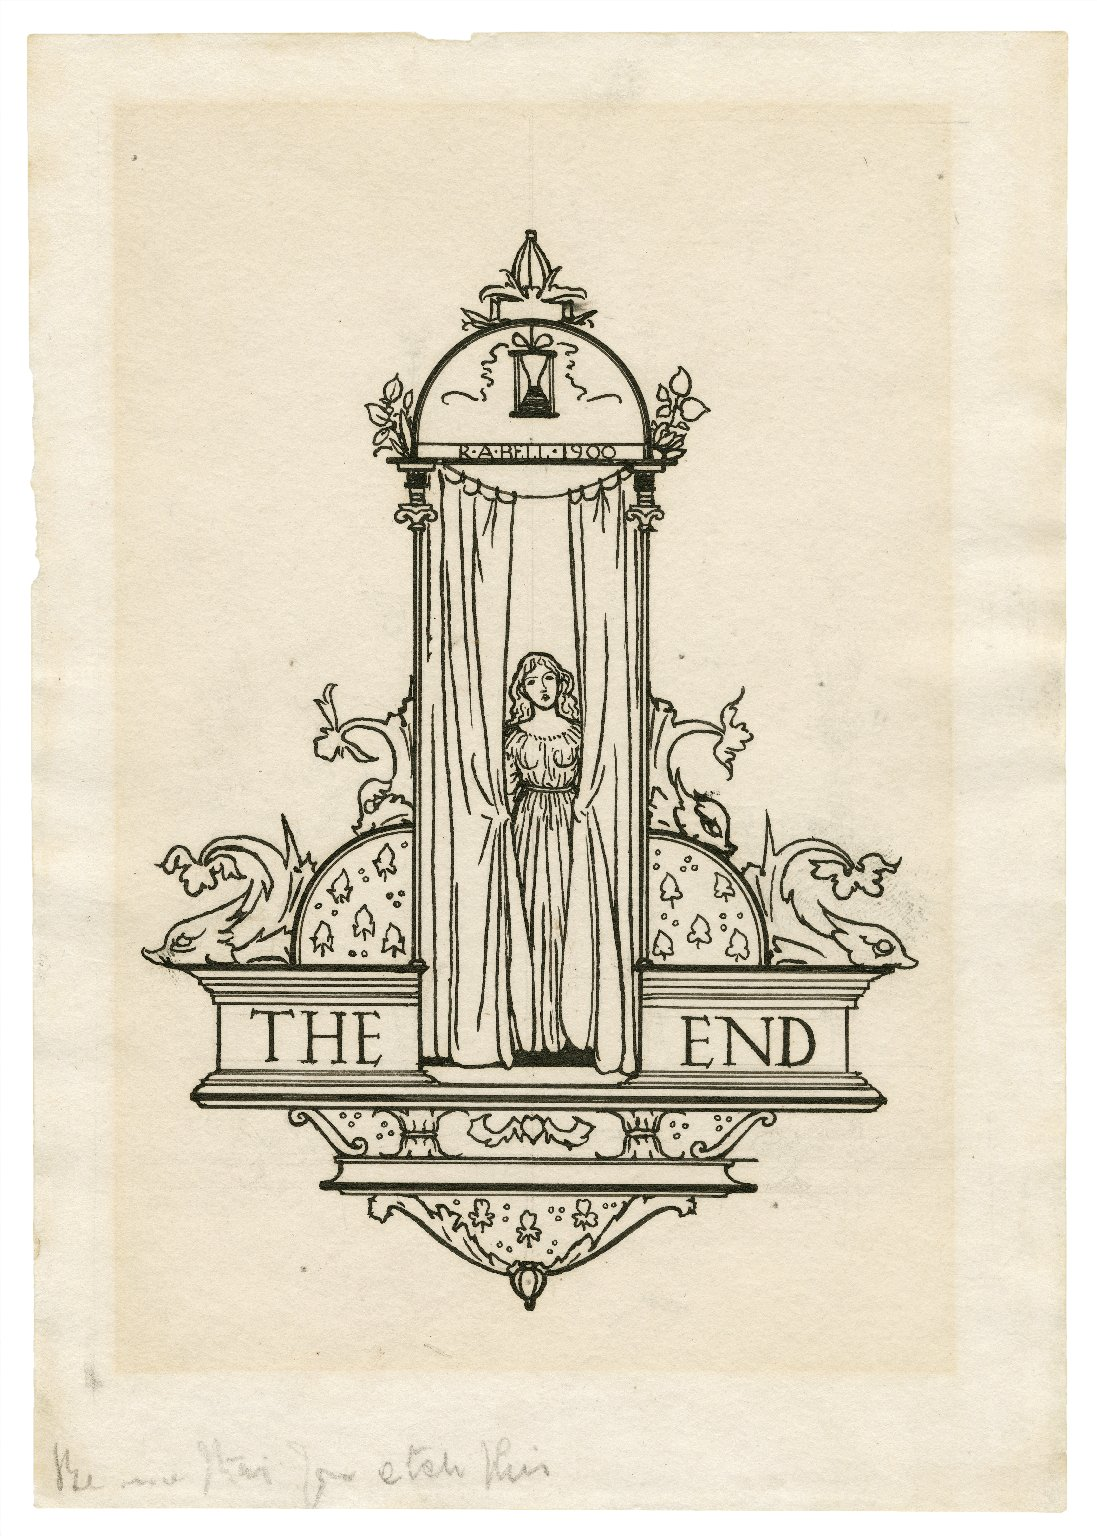 [Design for final illustration to Bell's edition of The tempest] [graphic] / R.A. Bell, 1900.